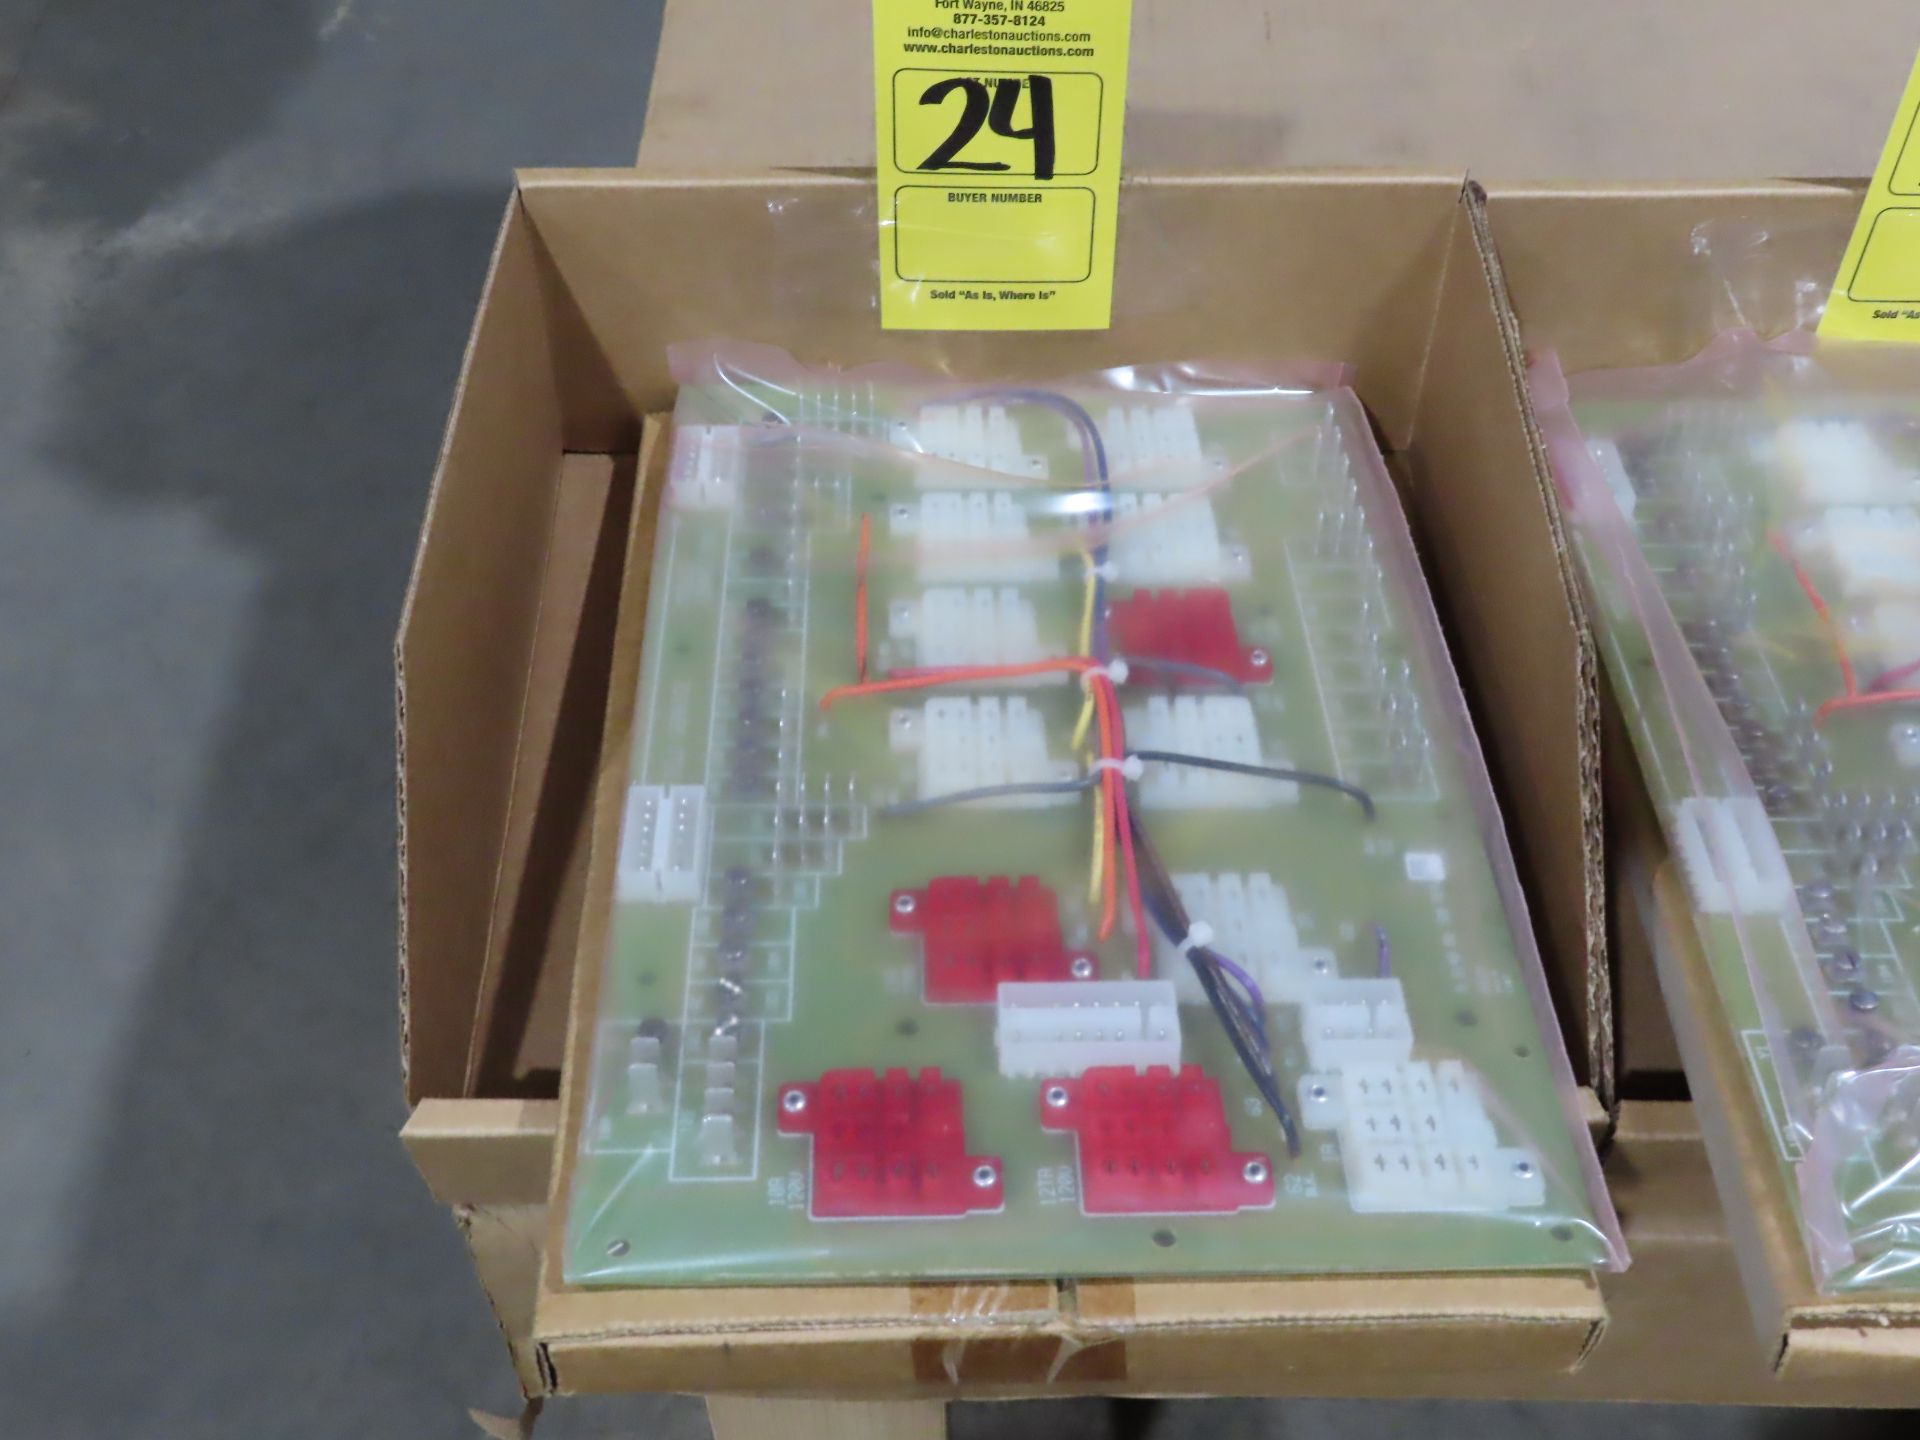 Lot 24 - York / Potter Brumfield Model 031-00254C replacement circuit boards, appears new, as always, with